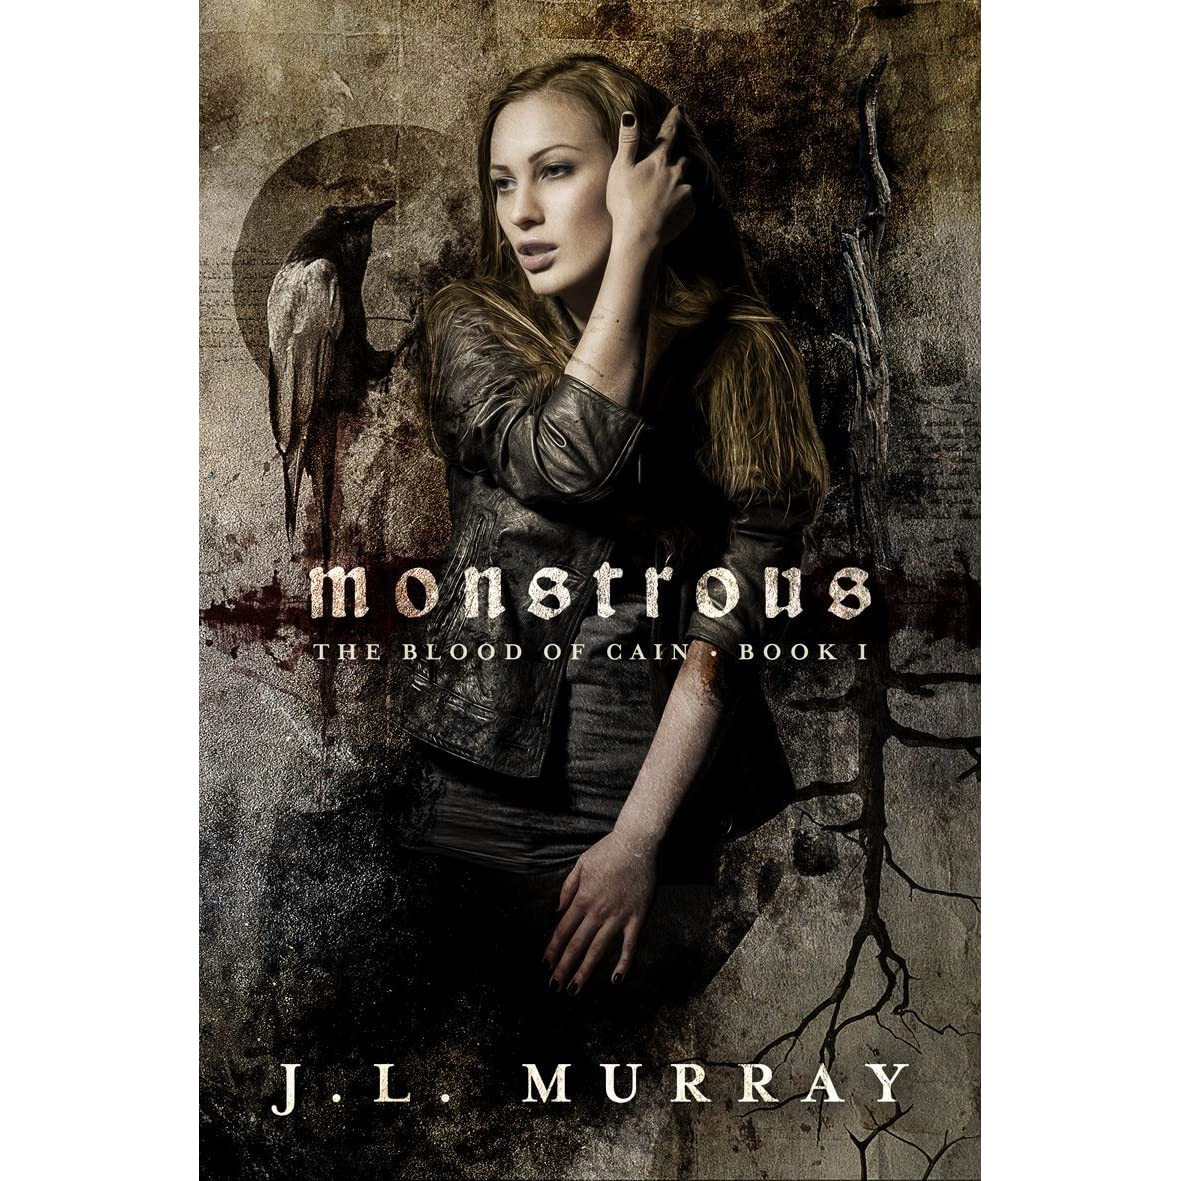 Amazoncom Monstrous Blood of Cain Book 1 eBook JL